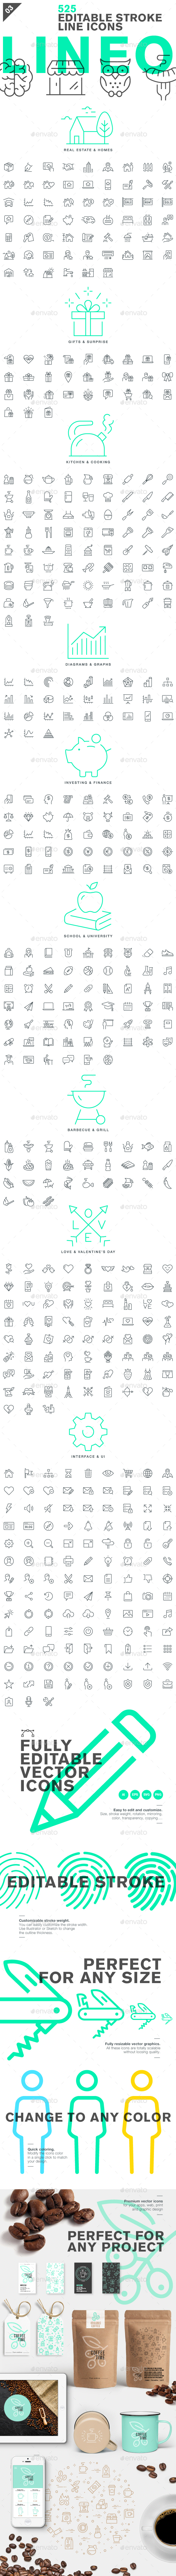 Lineo - Pack 3 - 525 Icons - Icons